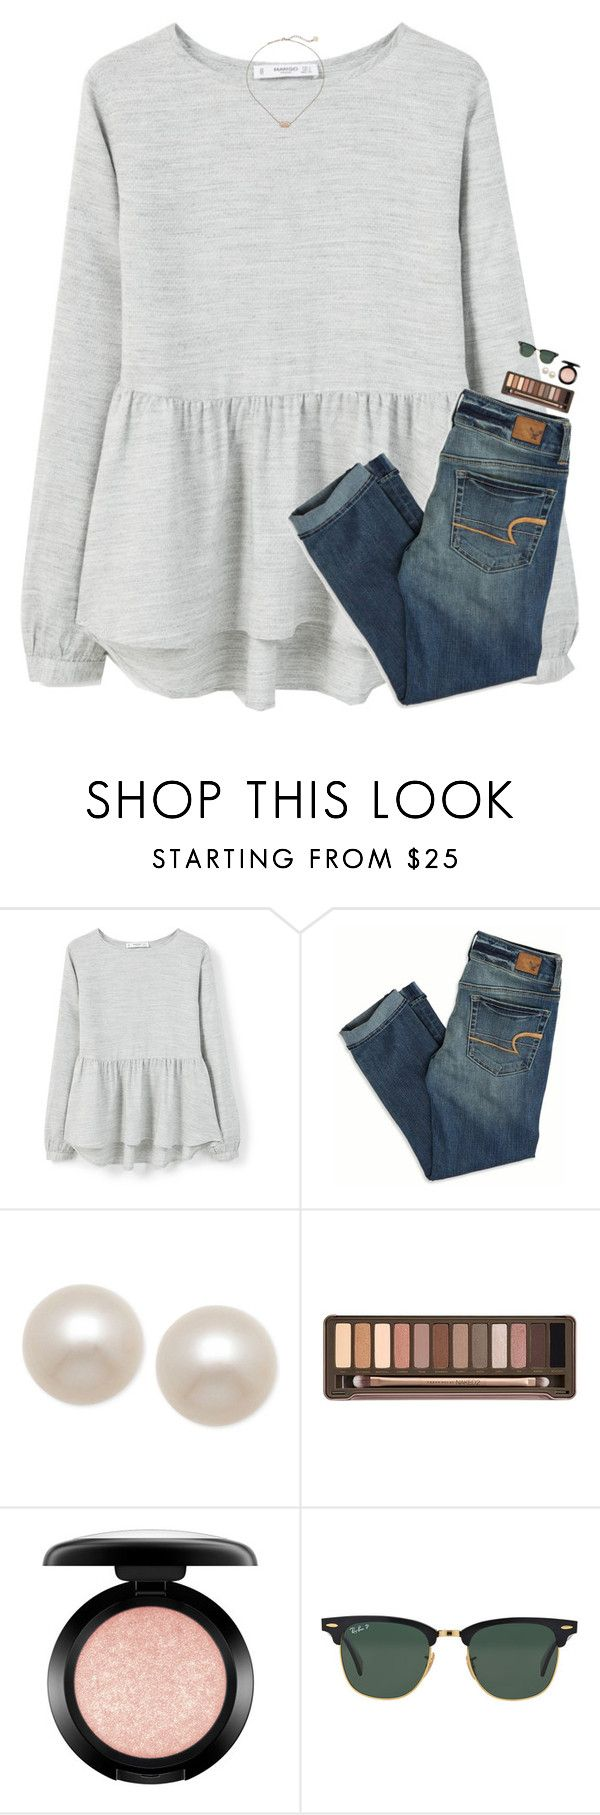 """""""currently it's pouring outside """" by classynsouthern ❤ liked on Polyvore featuring MANGO, American Eagle Outfitters, Honora, Urban Decay, MAC Cosmetics, Ray-Ban and Kendra Scott"""